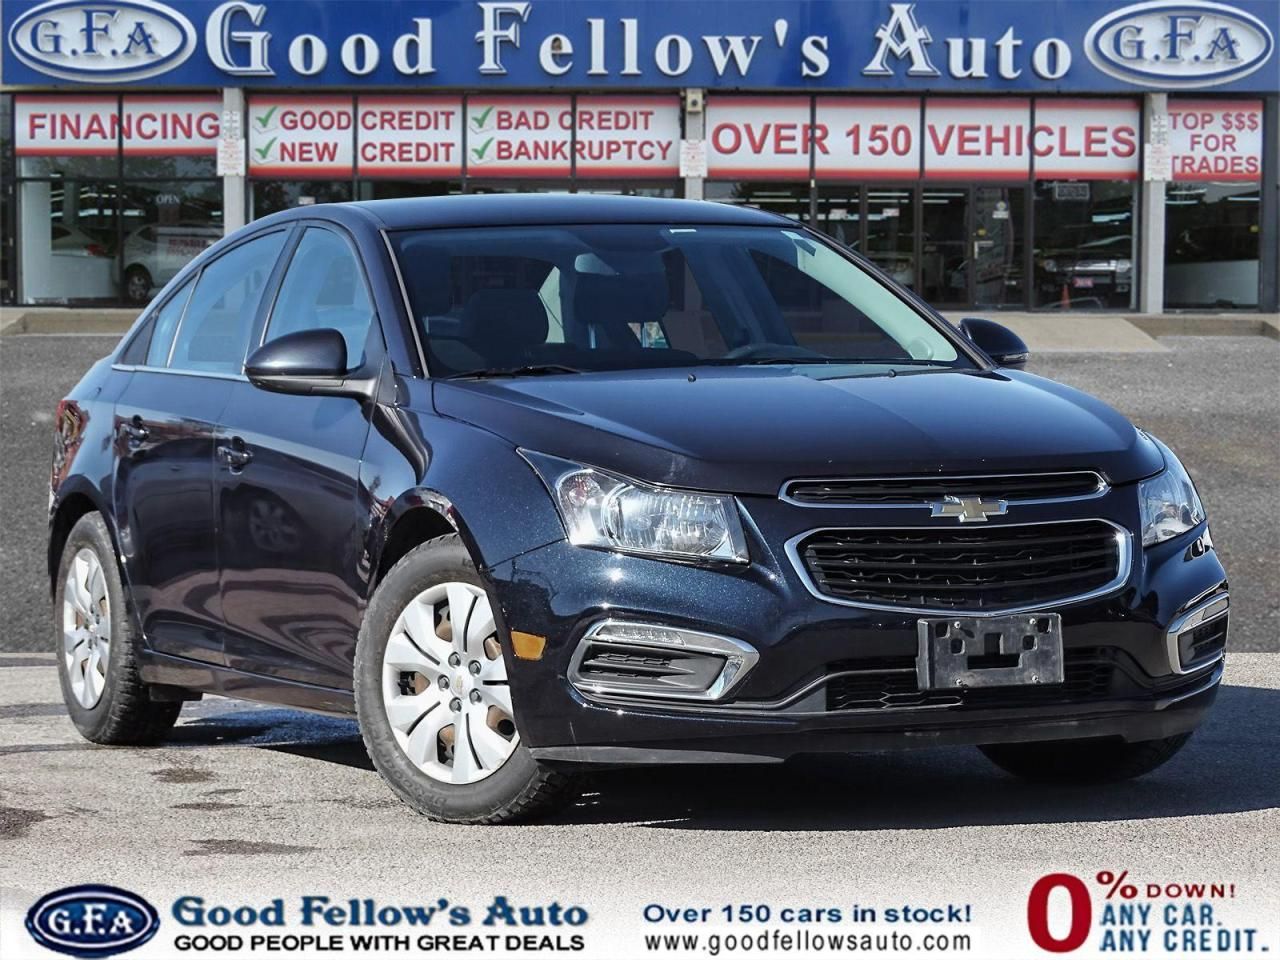 used 2015 Chevrolet Cruze car, priced at $6,400